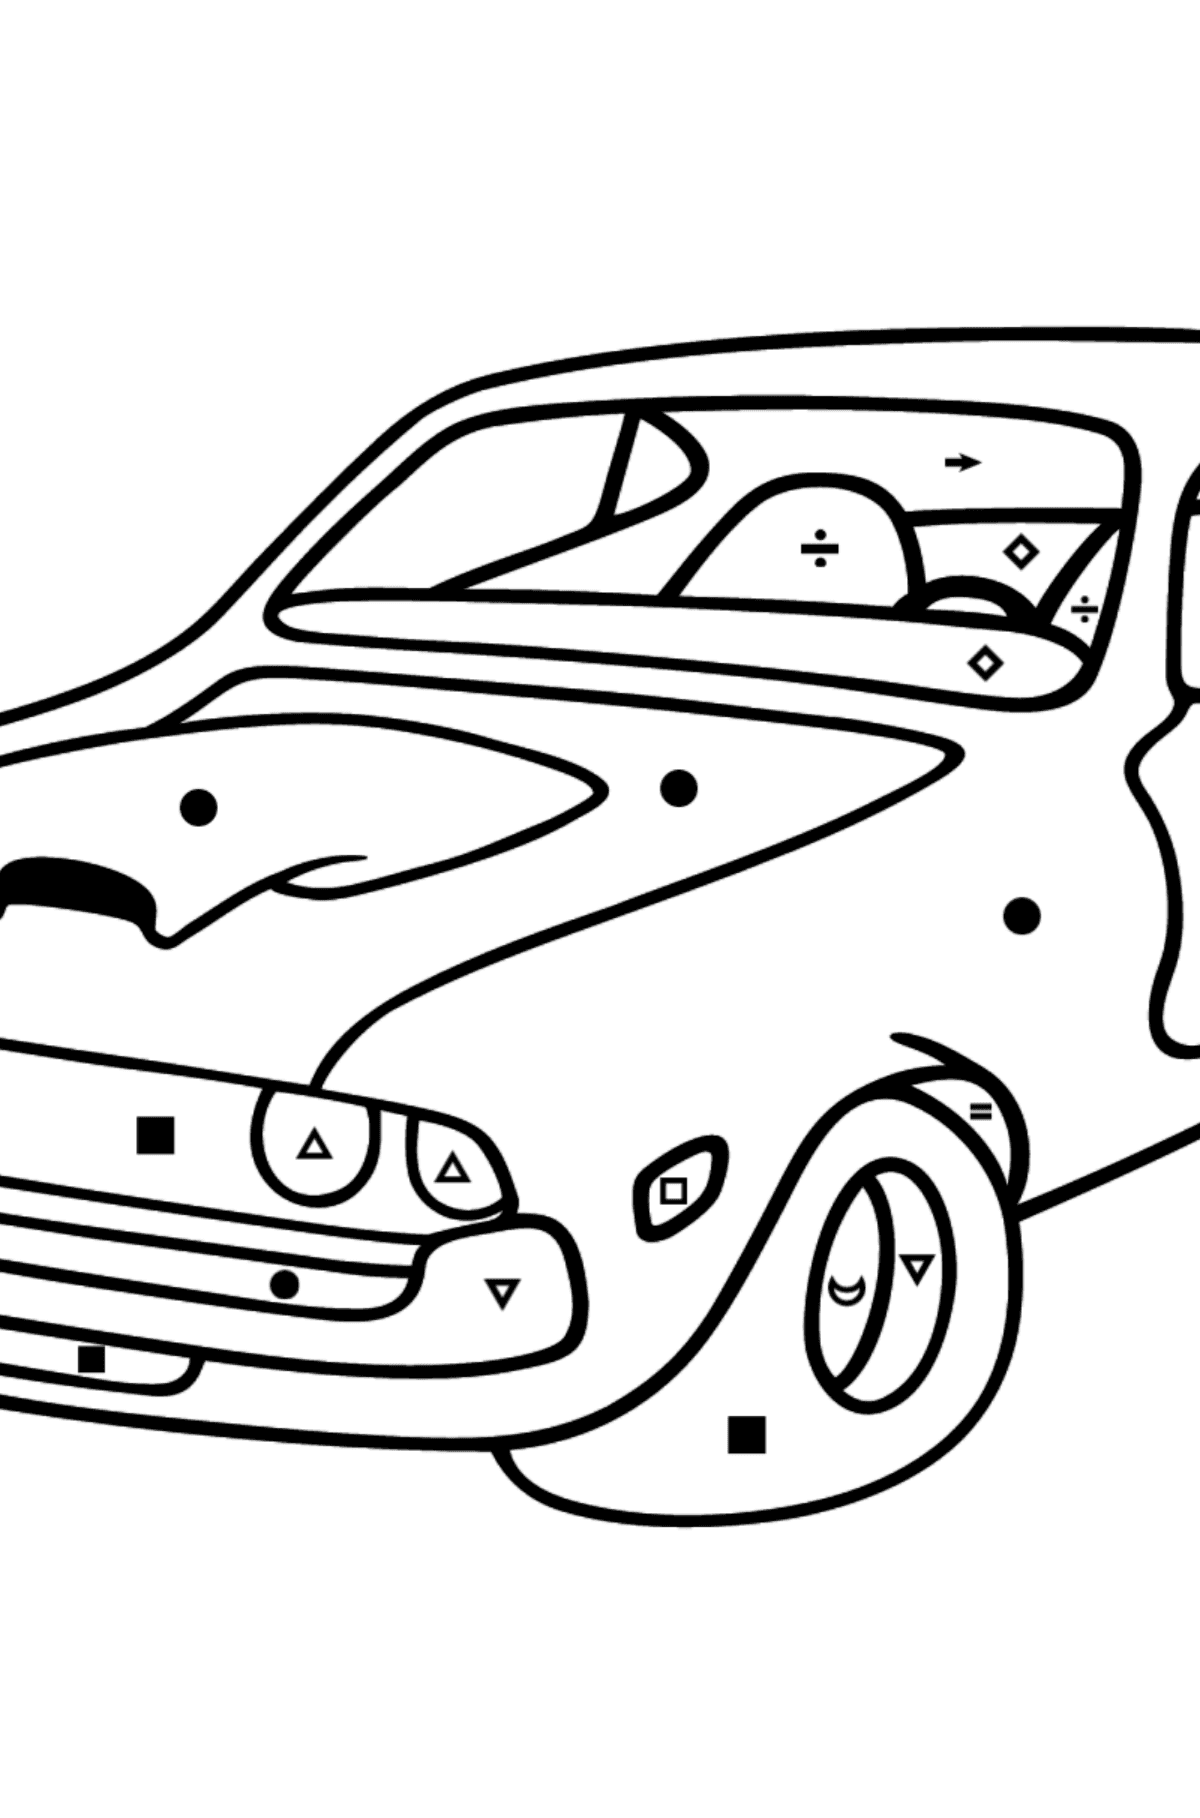 Chevrolet-Chevy Sports Car coloring page - Coloring by Symbols for Kids